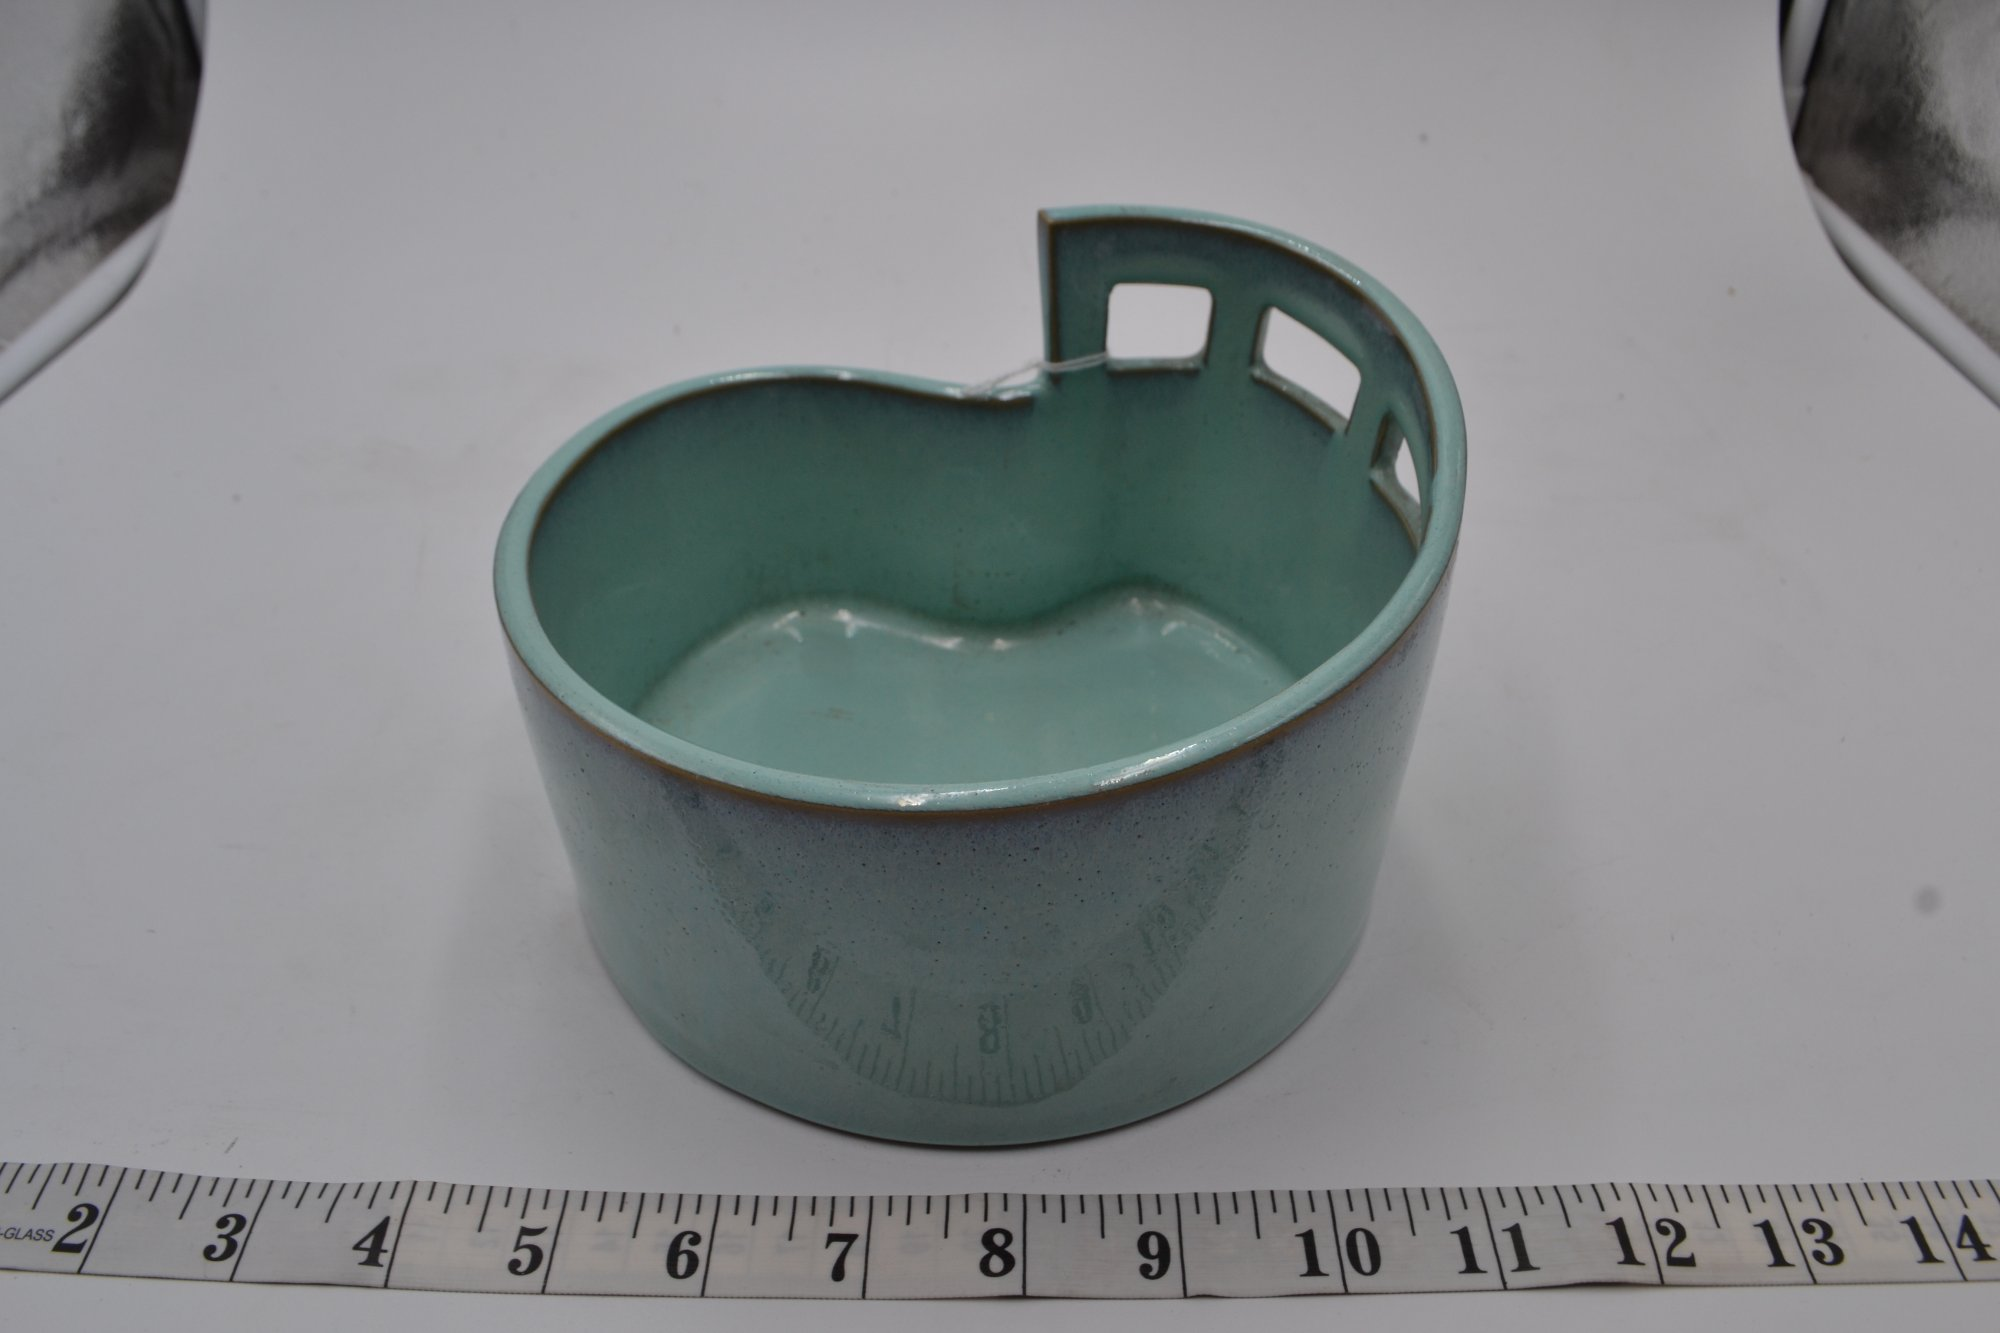 Japanese Decorative Porcelain Bowl 6 wide 4 tall - PXY